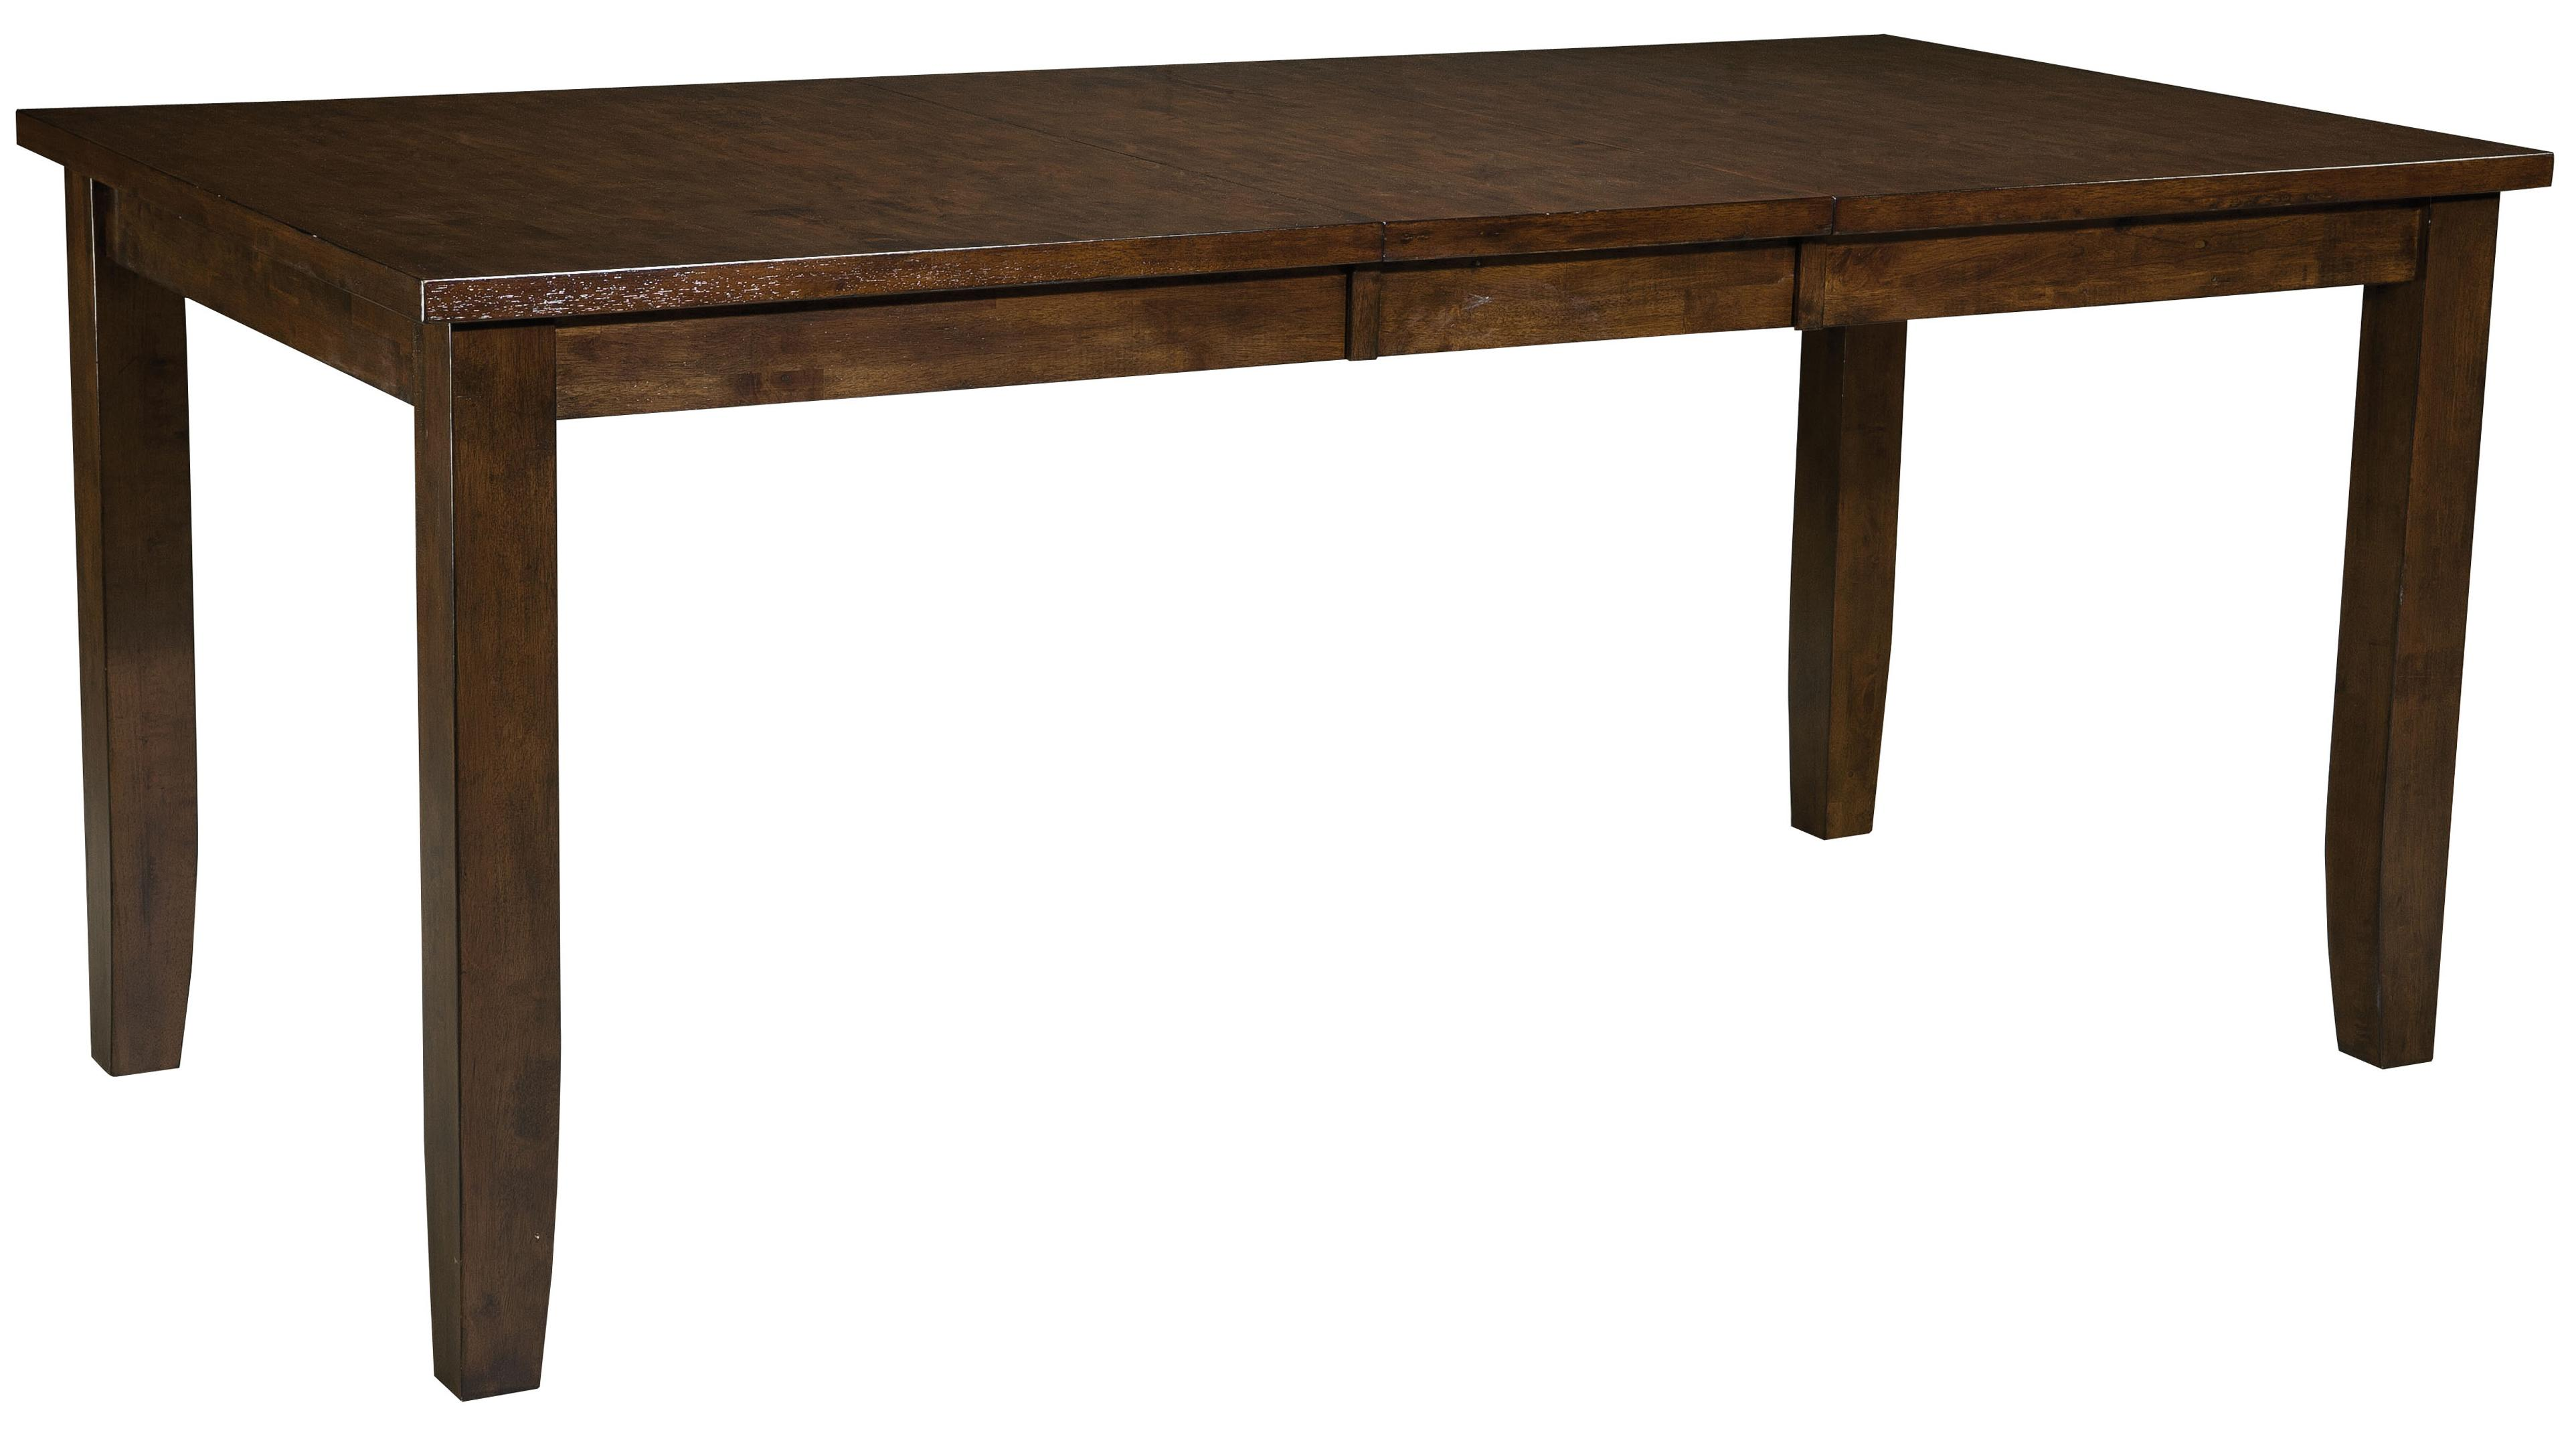 Standard Furniture Abaco Counter Height Table - Item Number: 18931